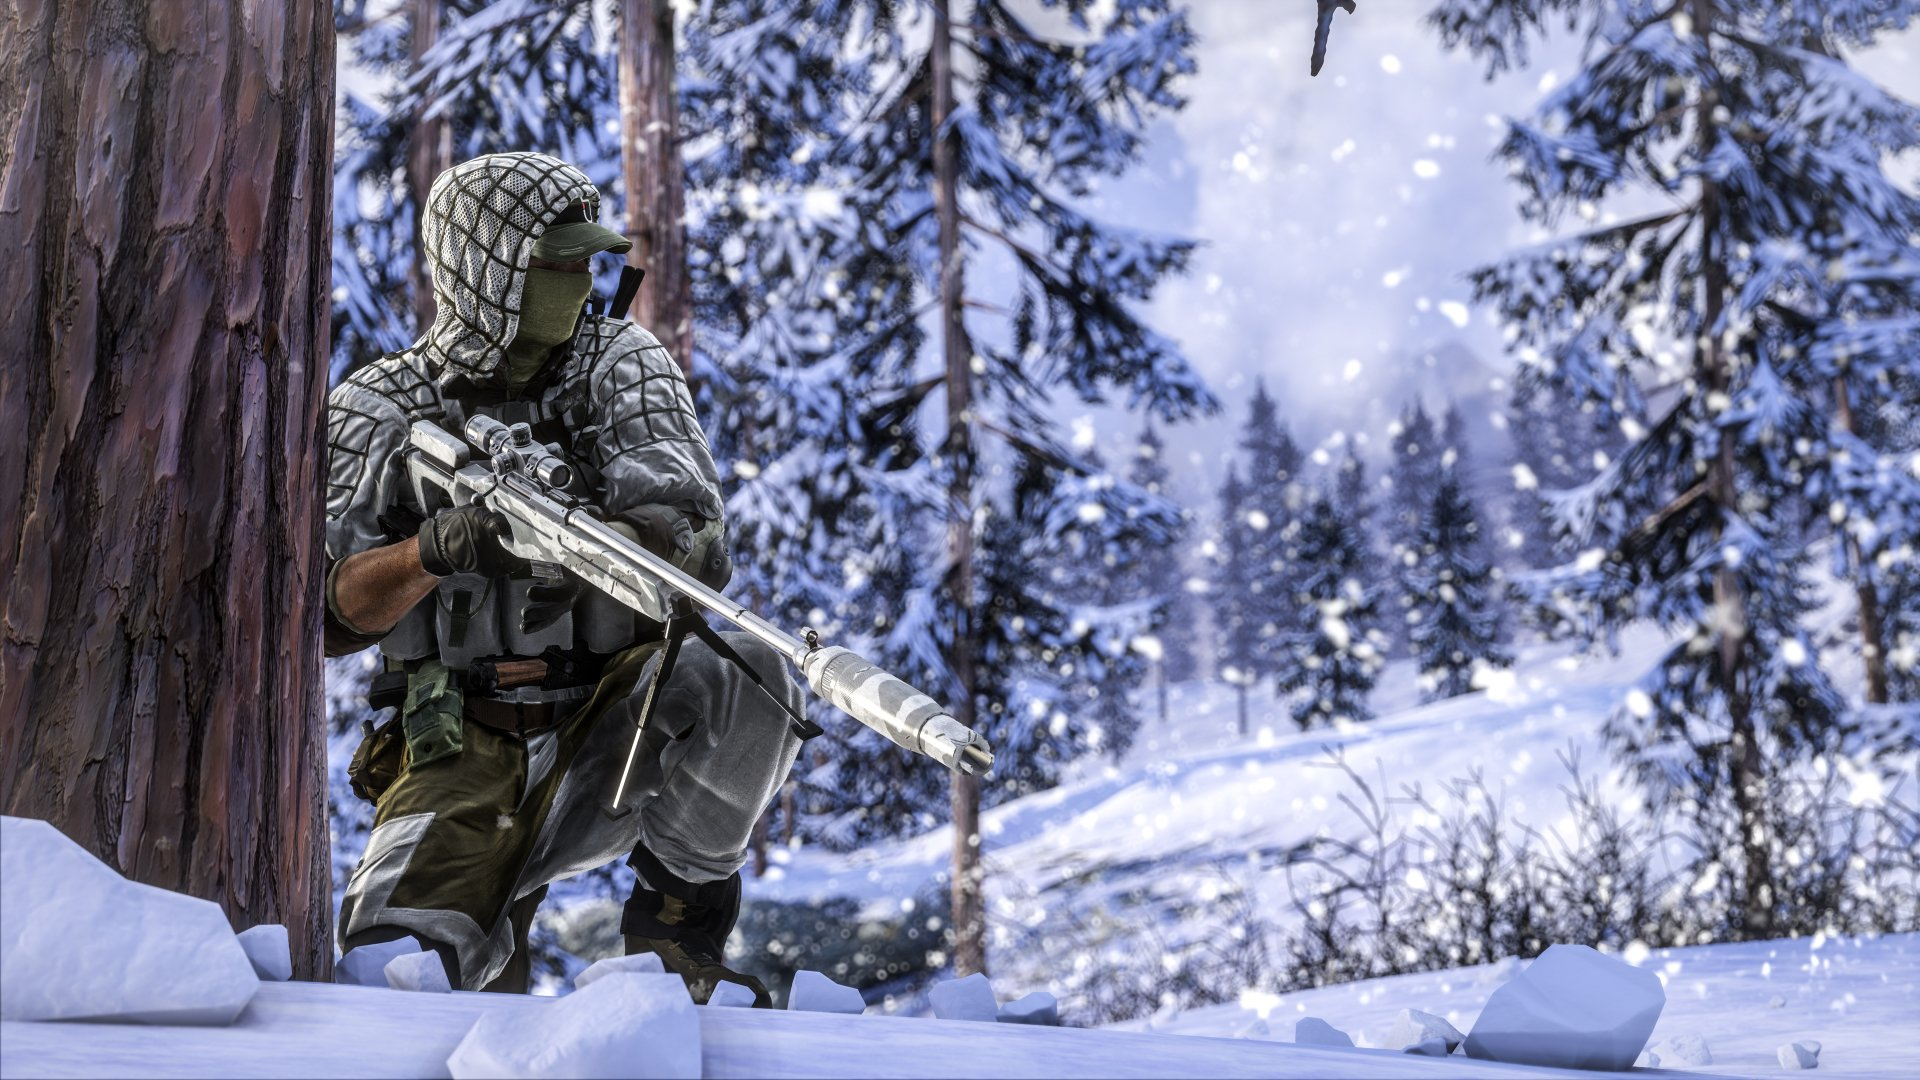 Video Game - Battlefield 4  Soldier Forest Winter Sniper Sniper Rifle Wallpaper